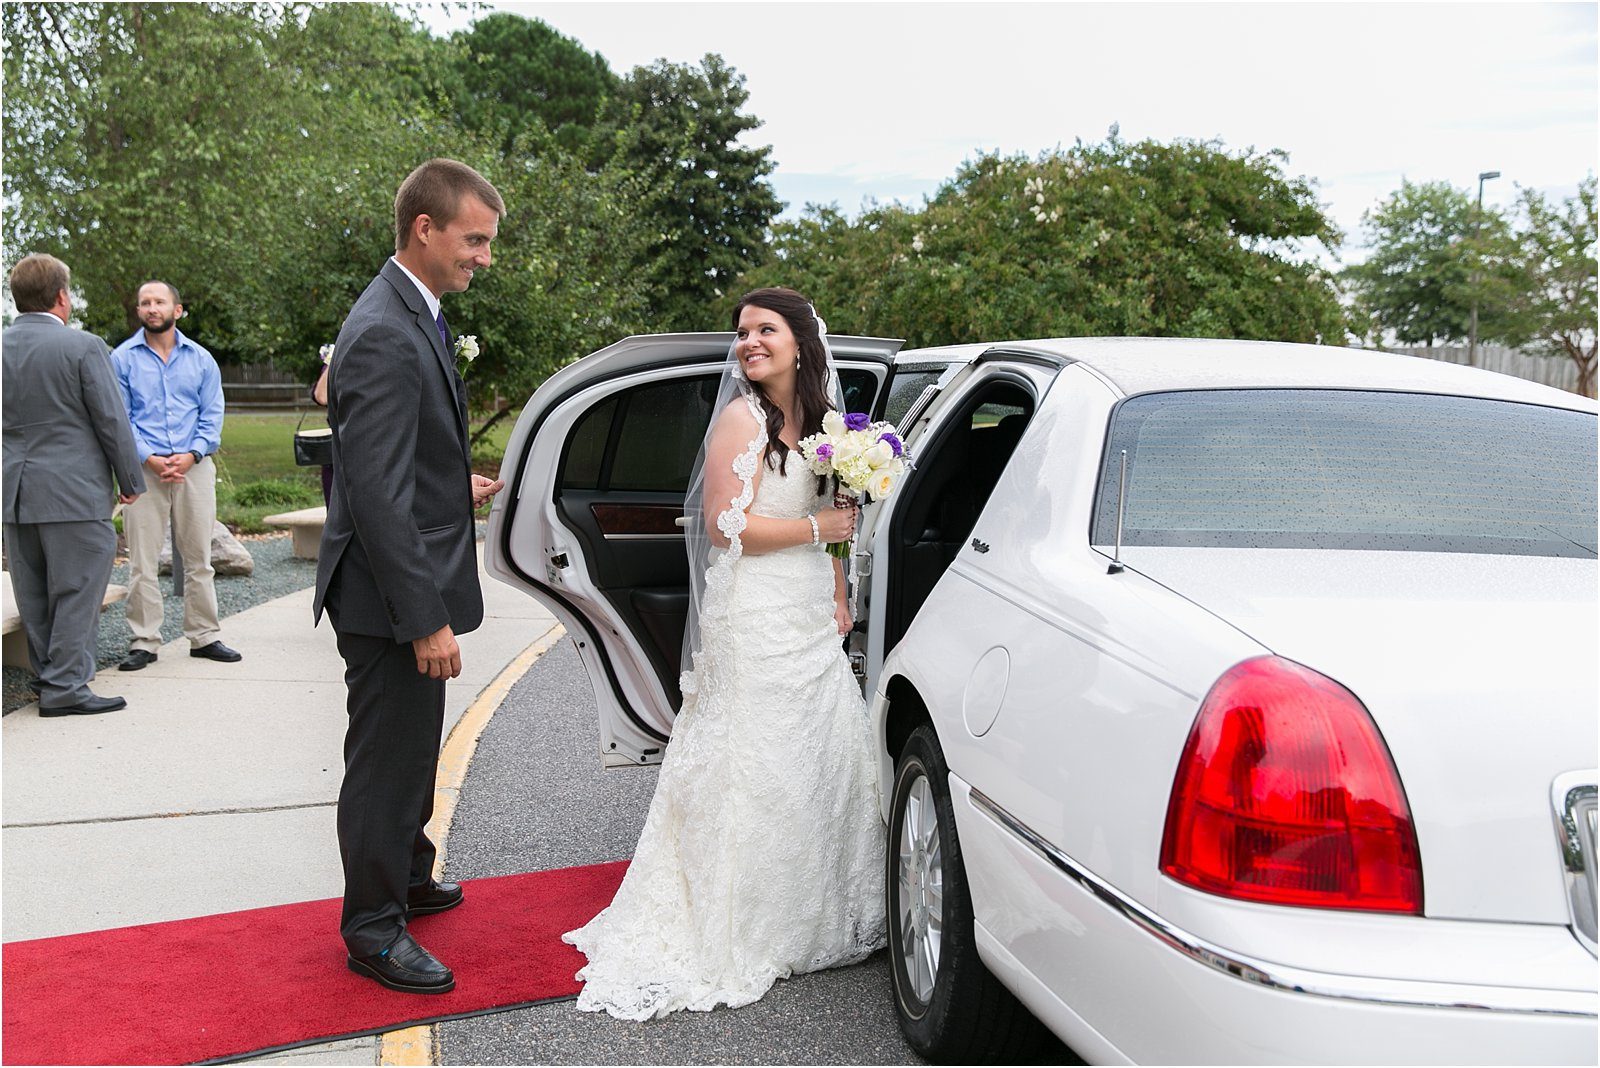 jessica_ryan_photography_bride_groom_suffolk_wedding_virginia_wedding_photography_hampton_roads_0254